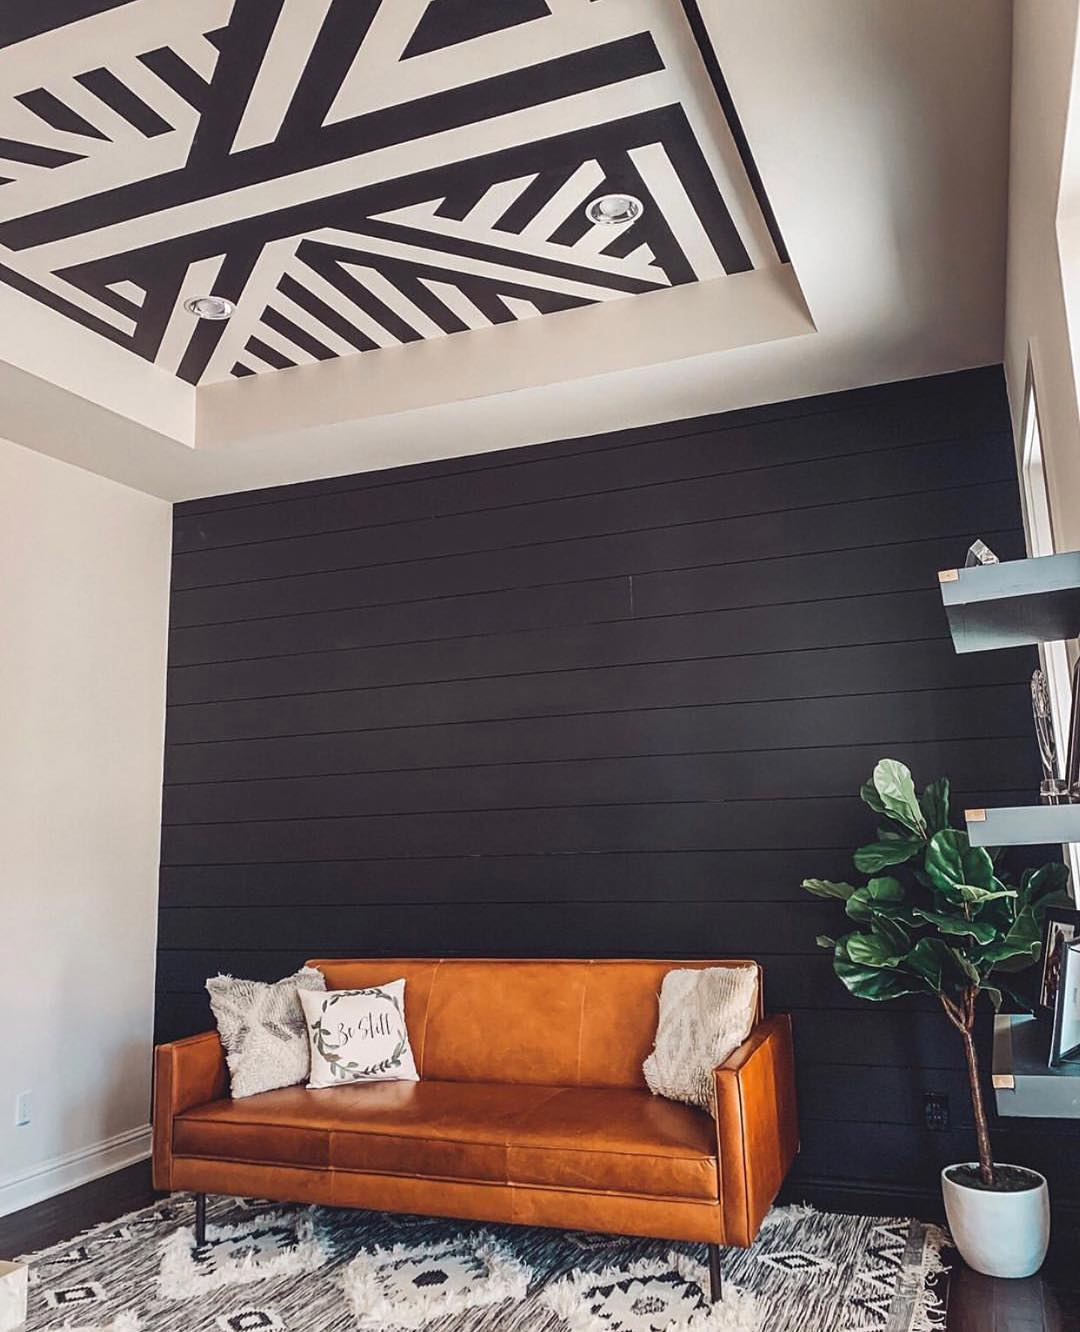 interior design tips - room with ceiling painting